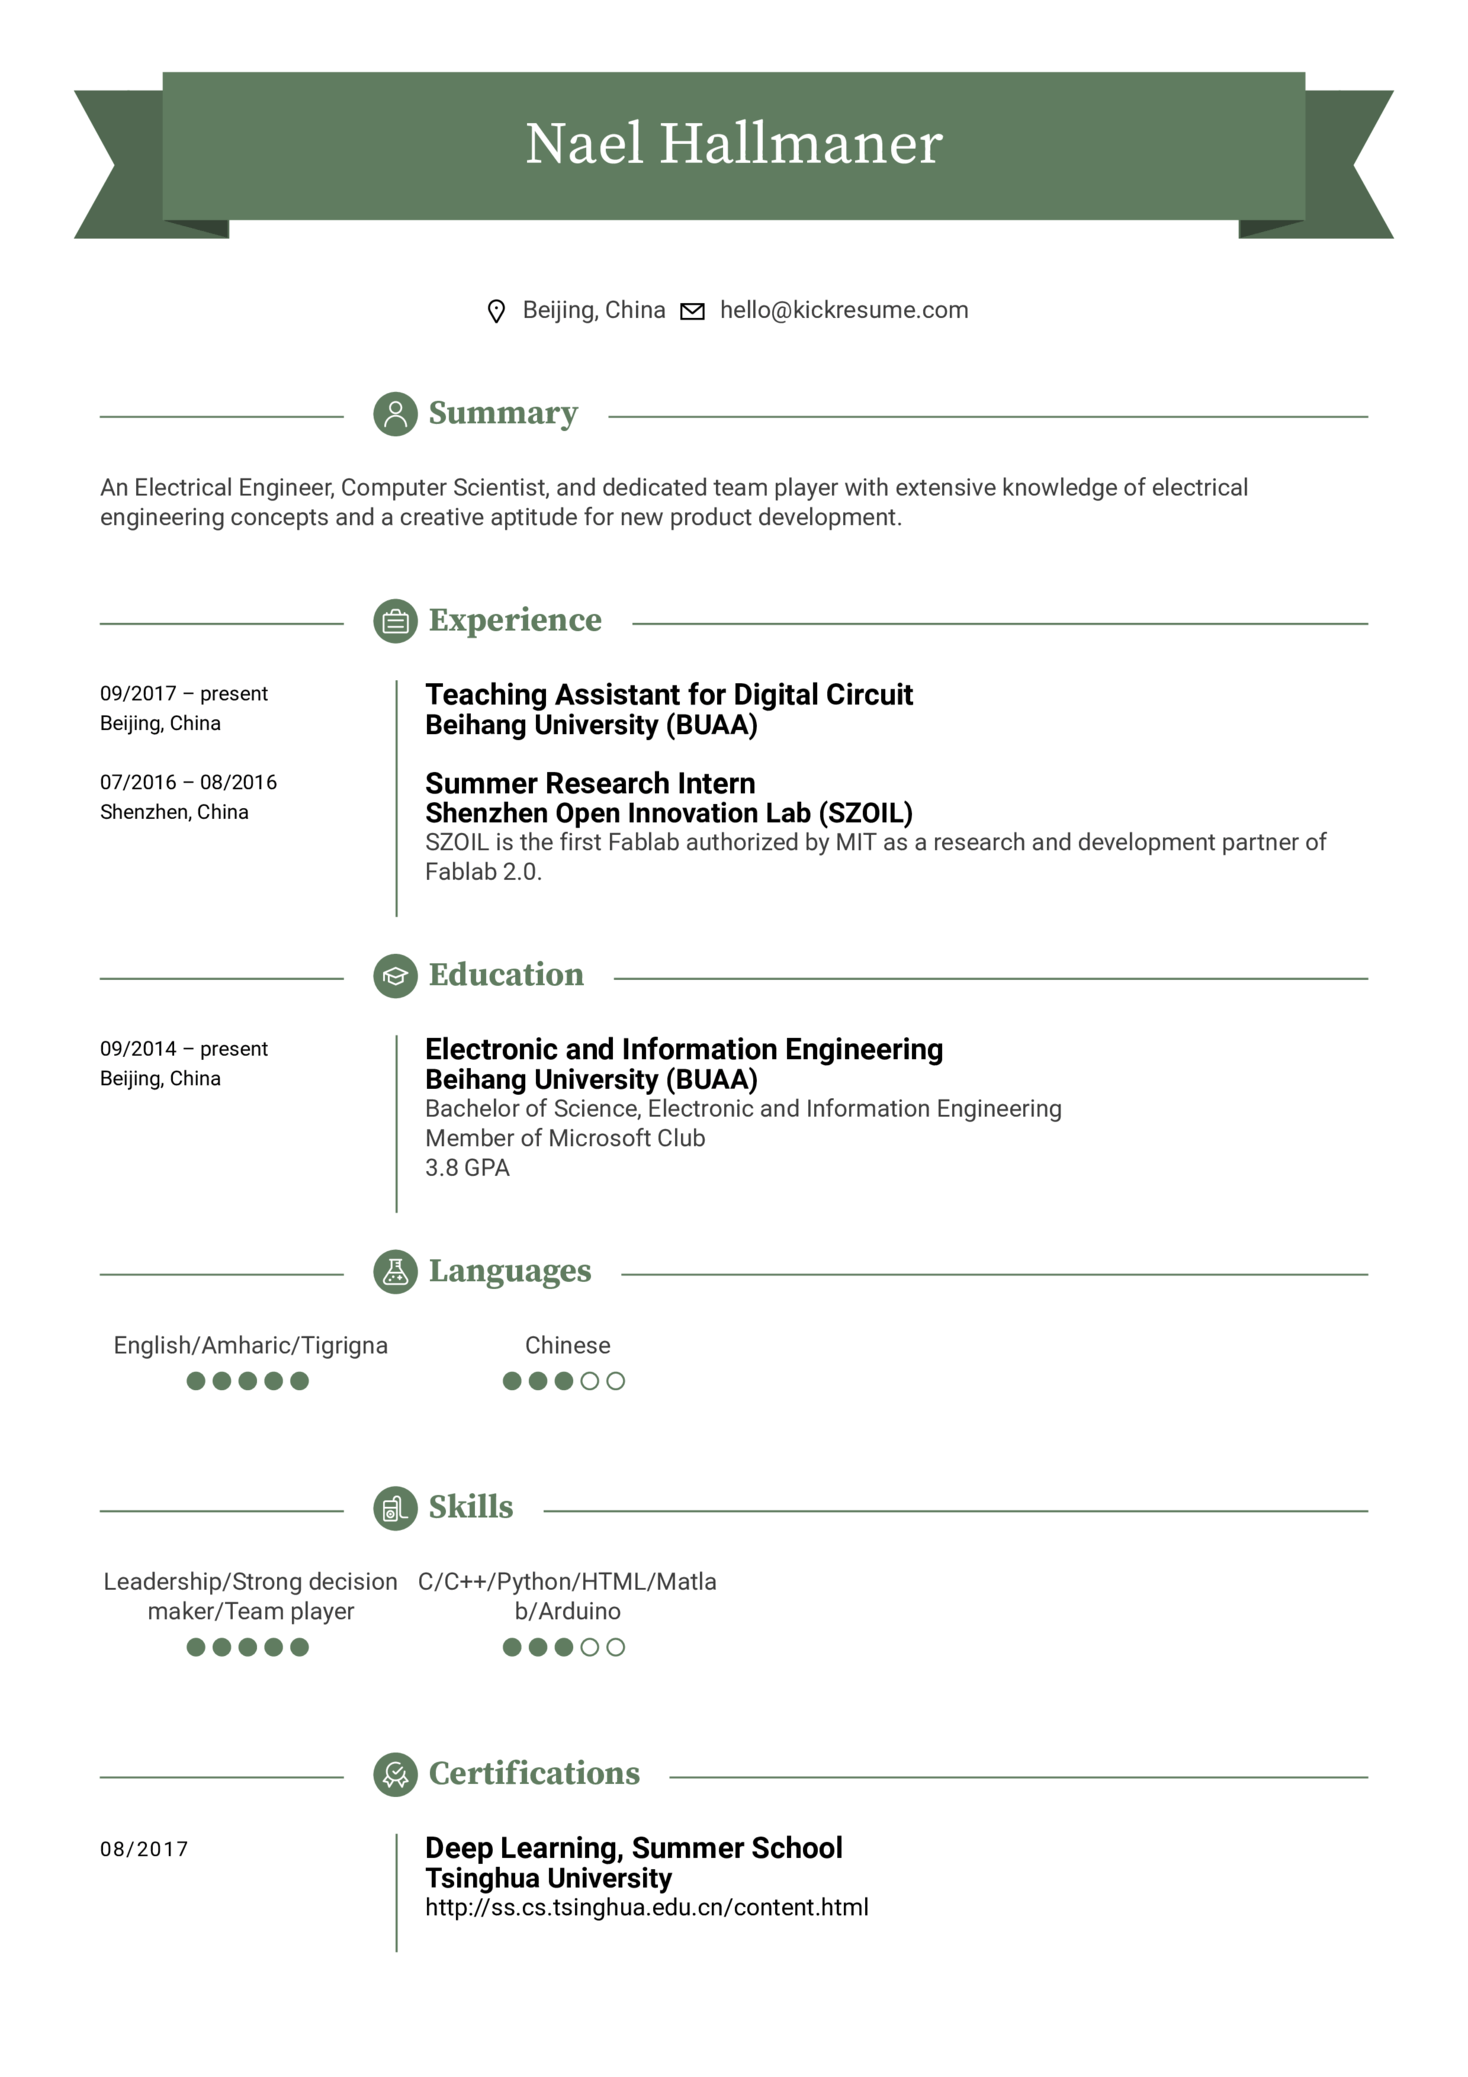 electrical engineer teaching assistant resume sample - Resume Sample For Electrical Engineer